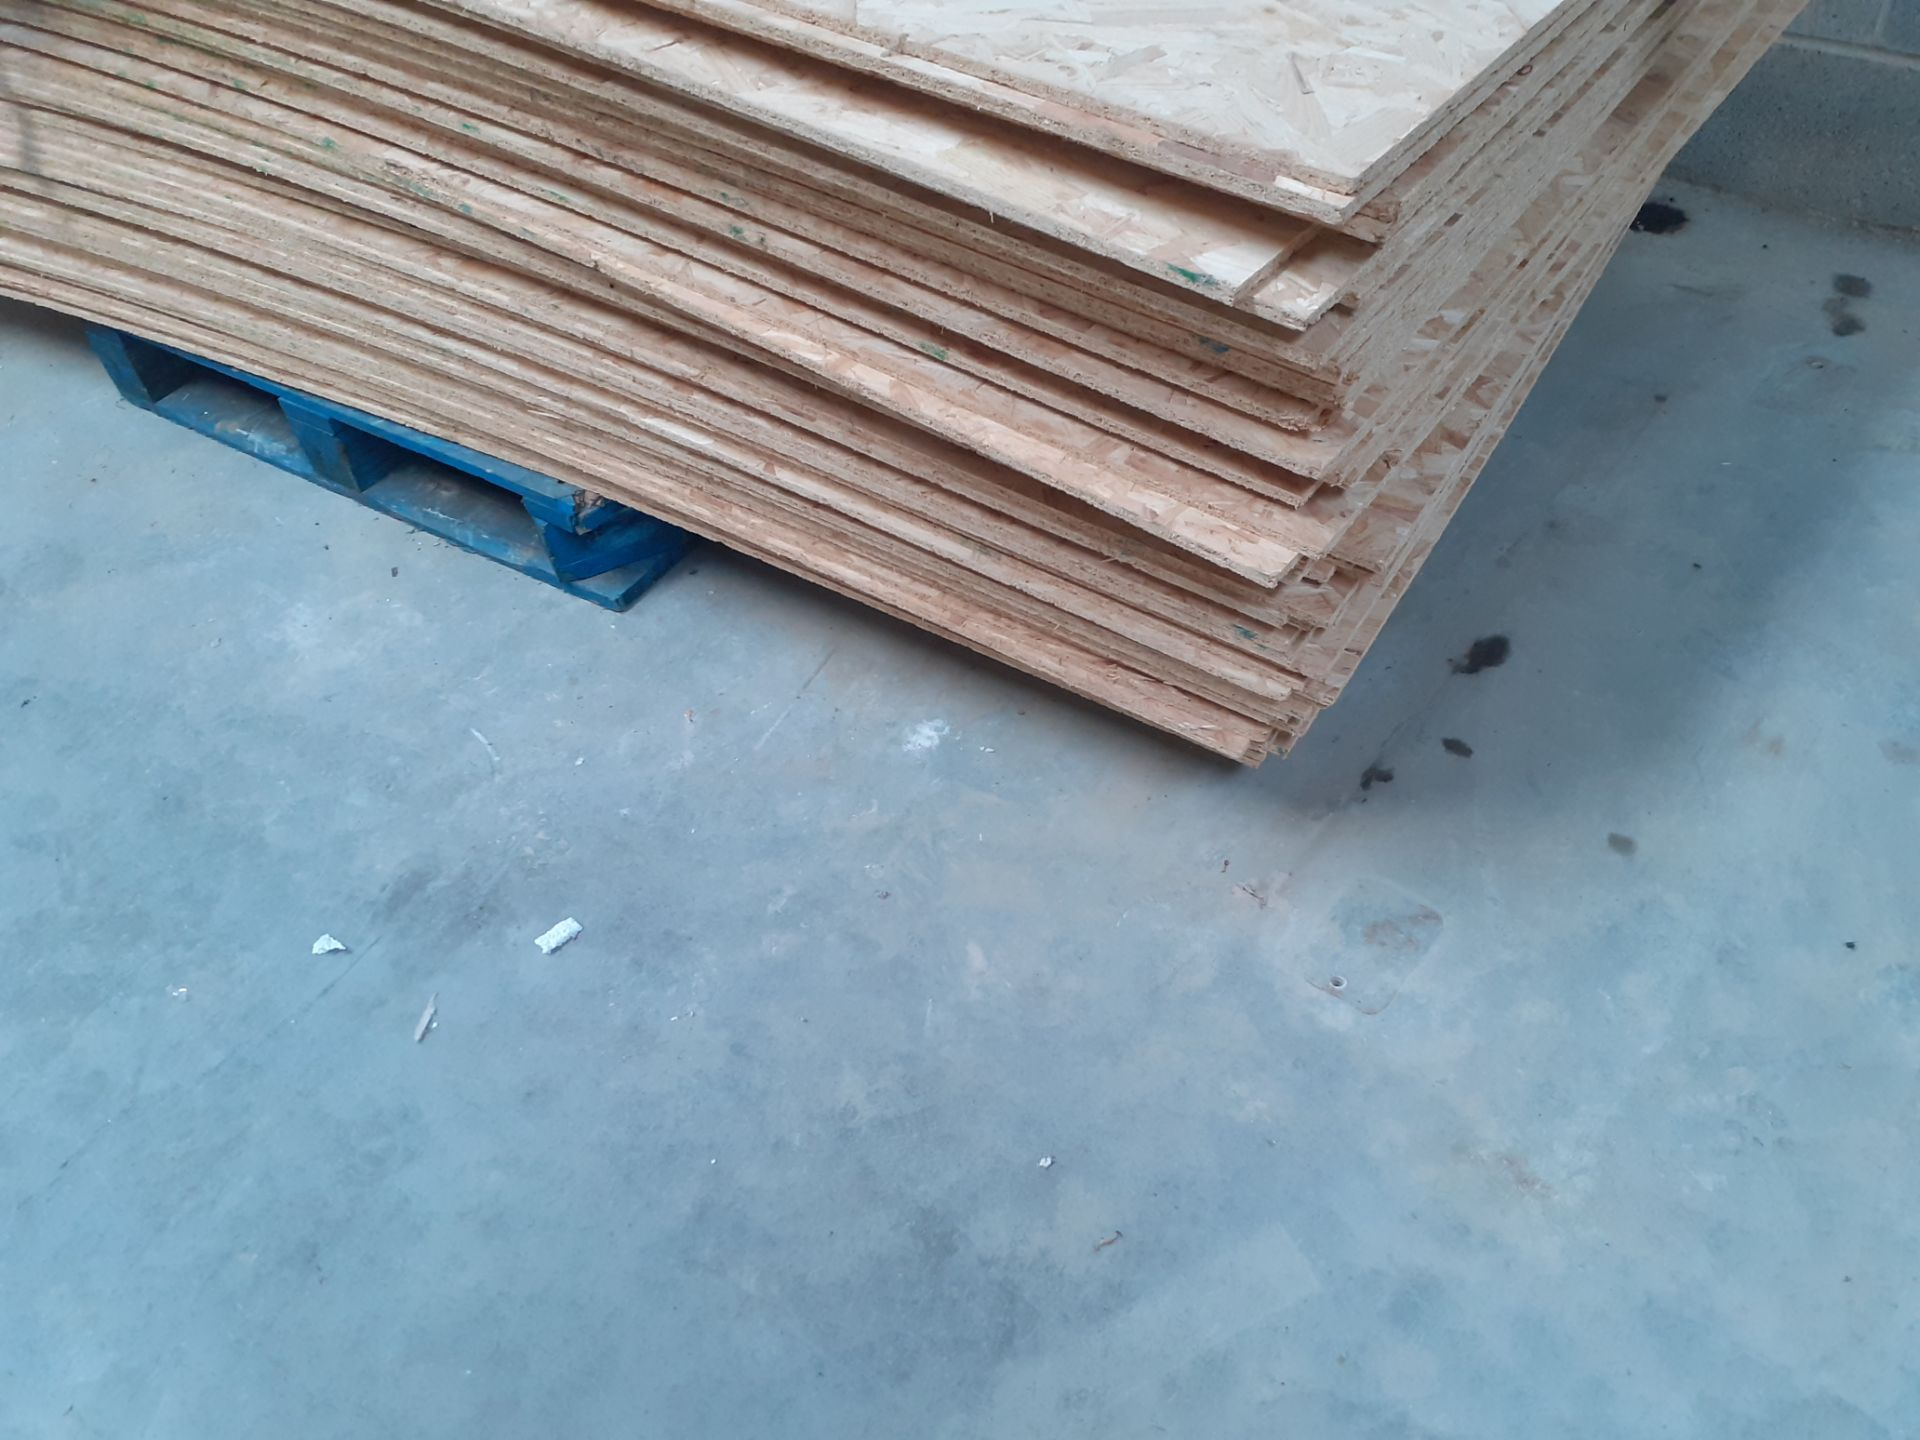 57 SHEETS 8' x 4' OSB3 11mm SHEETS, BRAND NEW, NORBOARD BRAND *NO VAT*